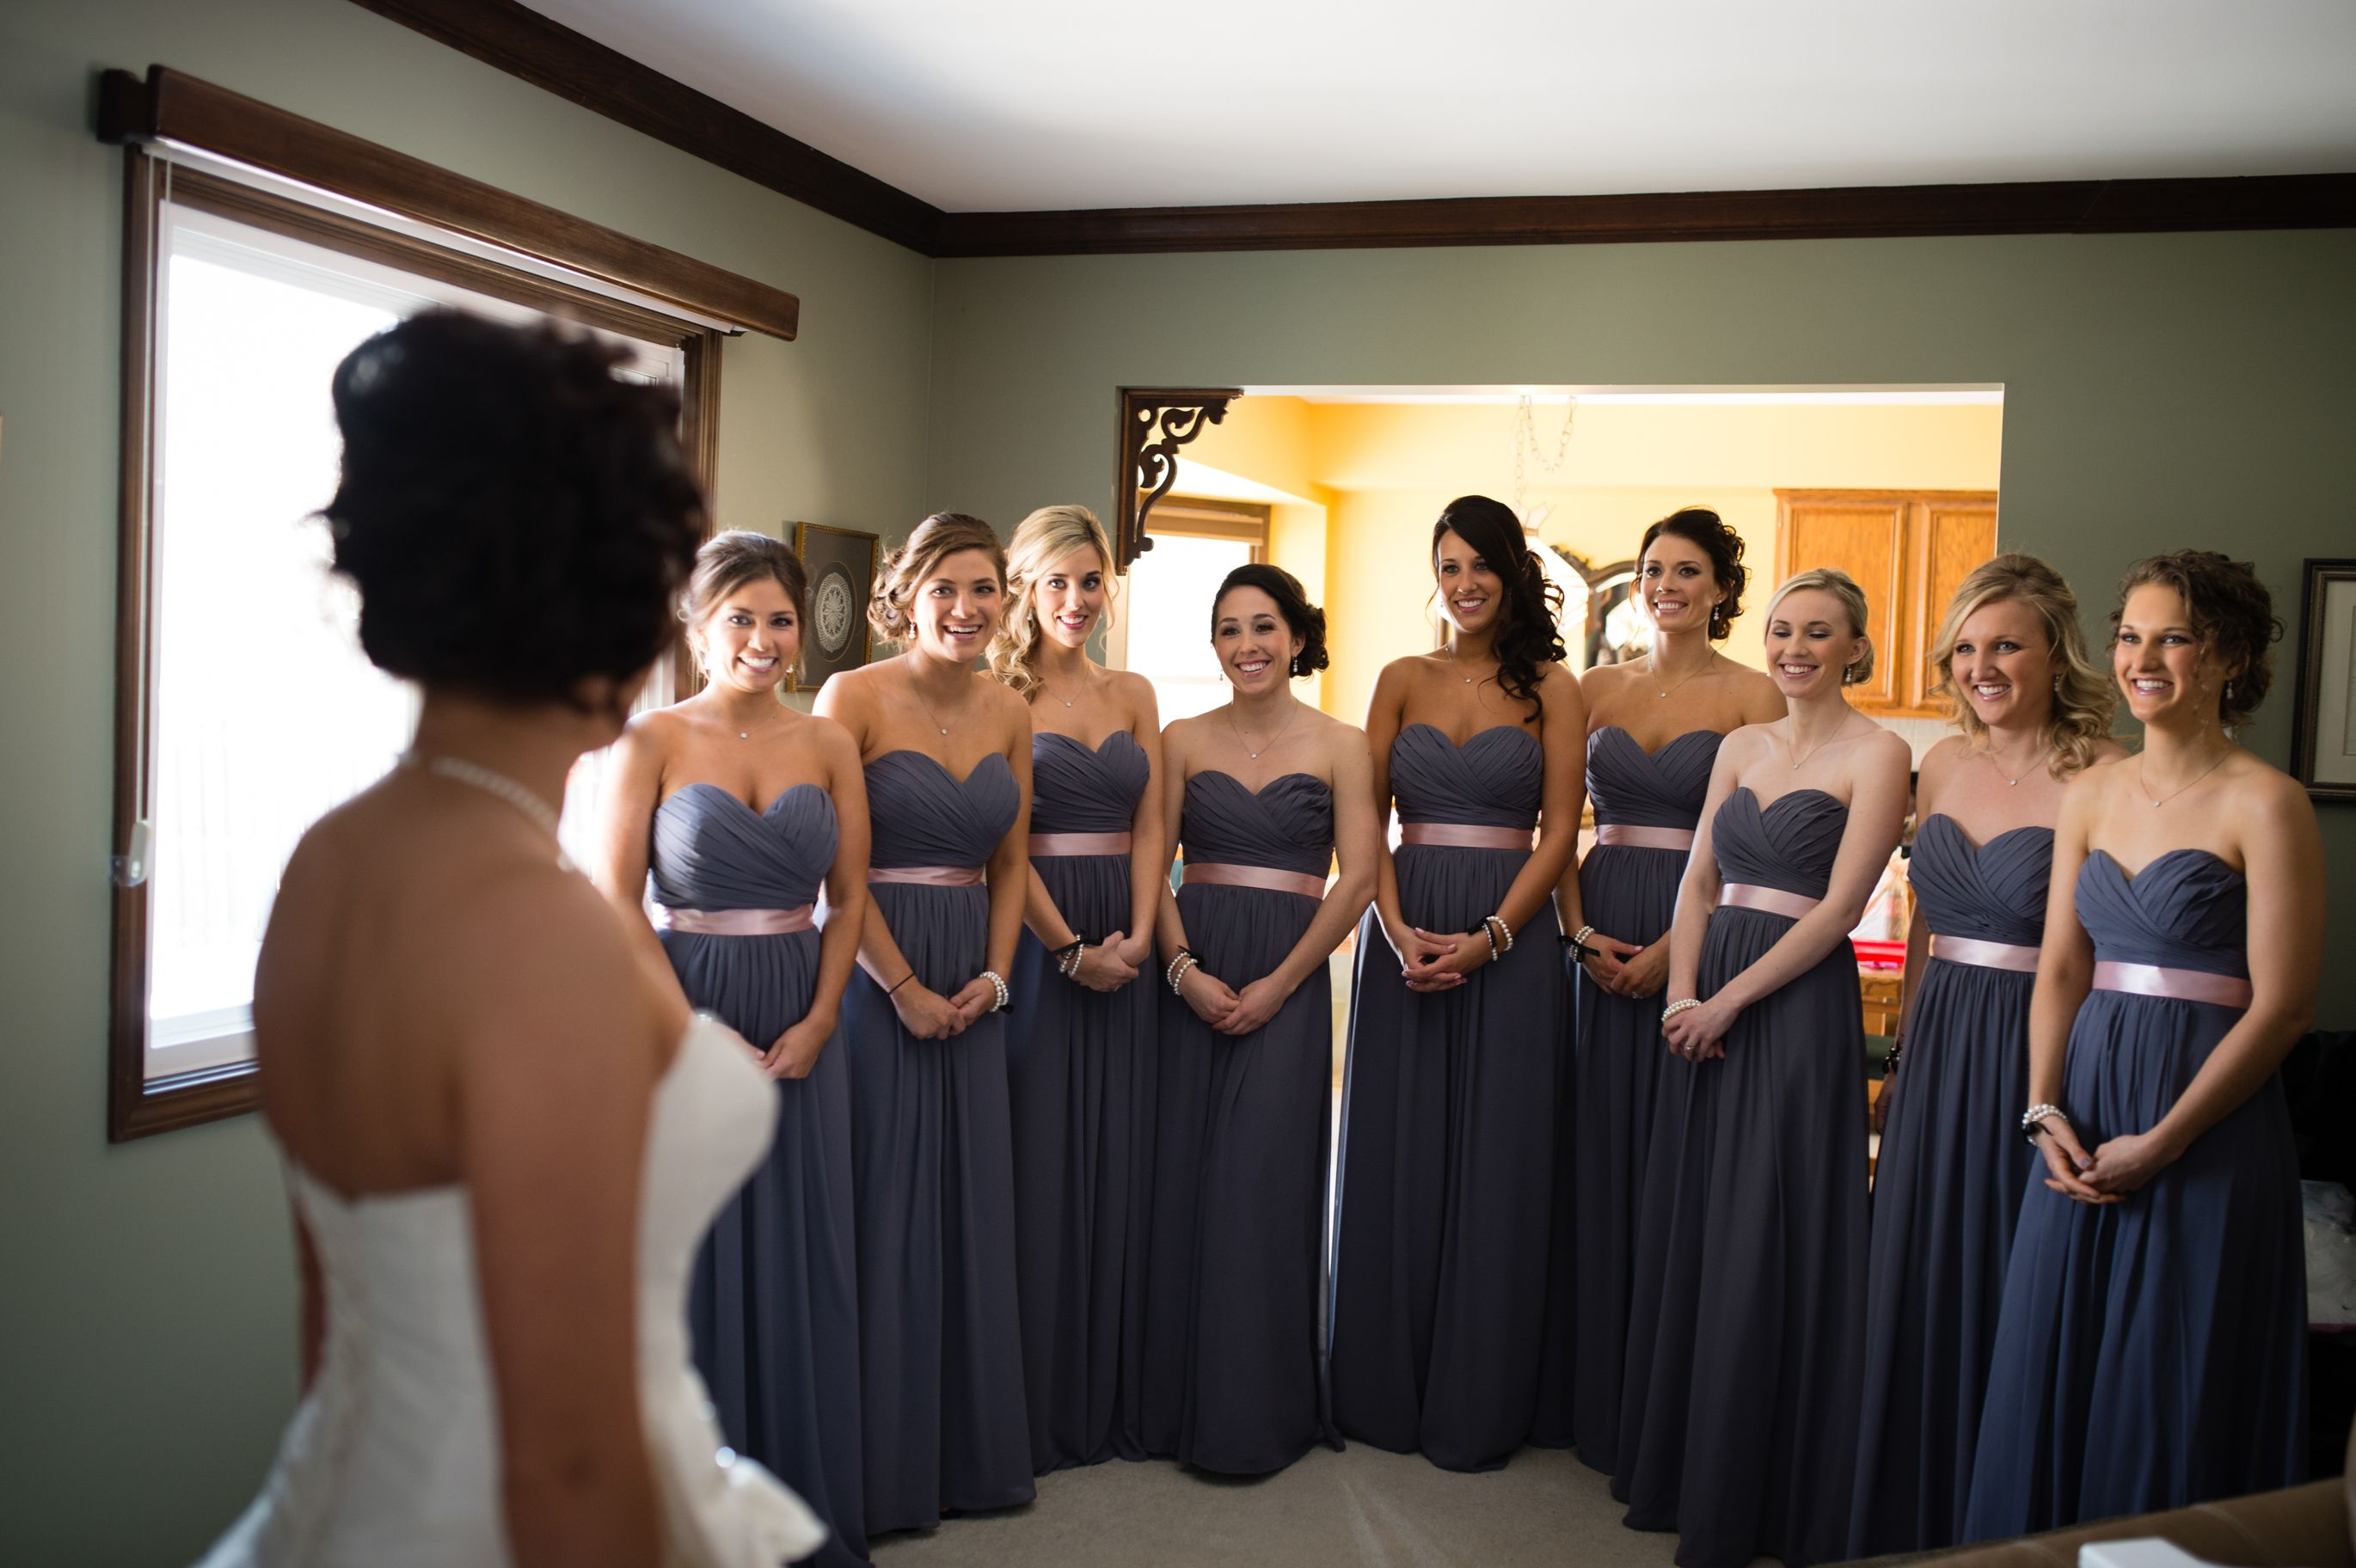 Funky charcoal bridesmaids dresses image wedding dress ideas charcoal bridesmaids dresses image collections braidsmaid dress ombrellifo Gallery